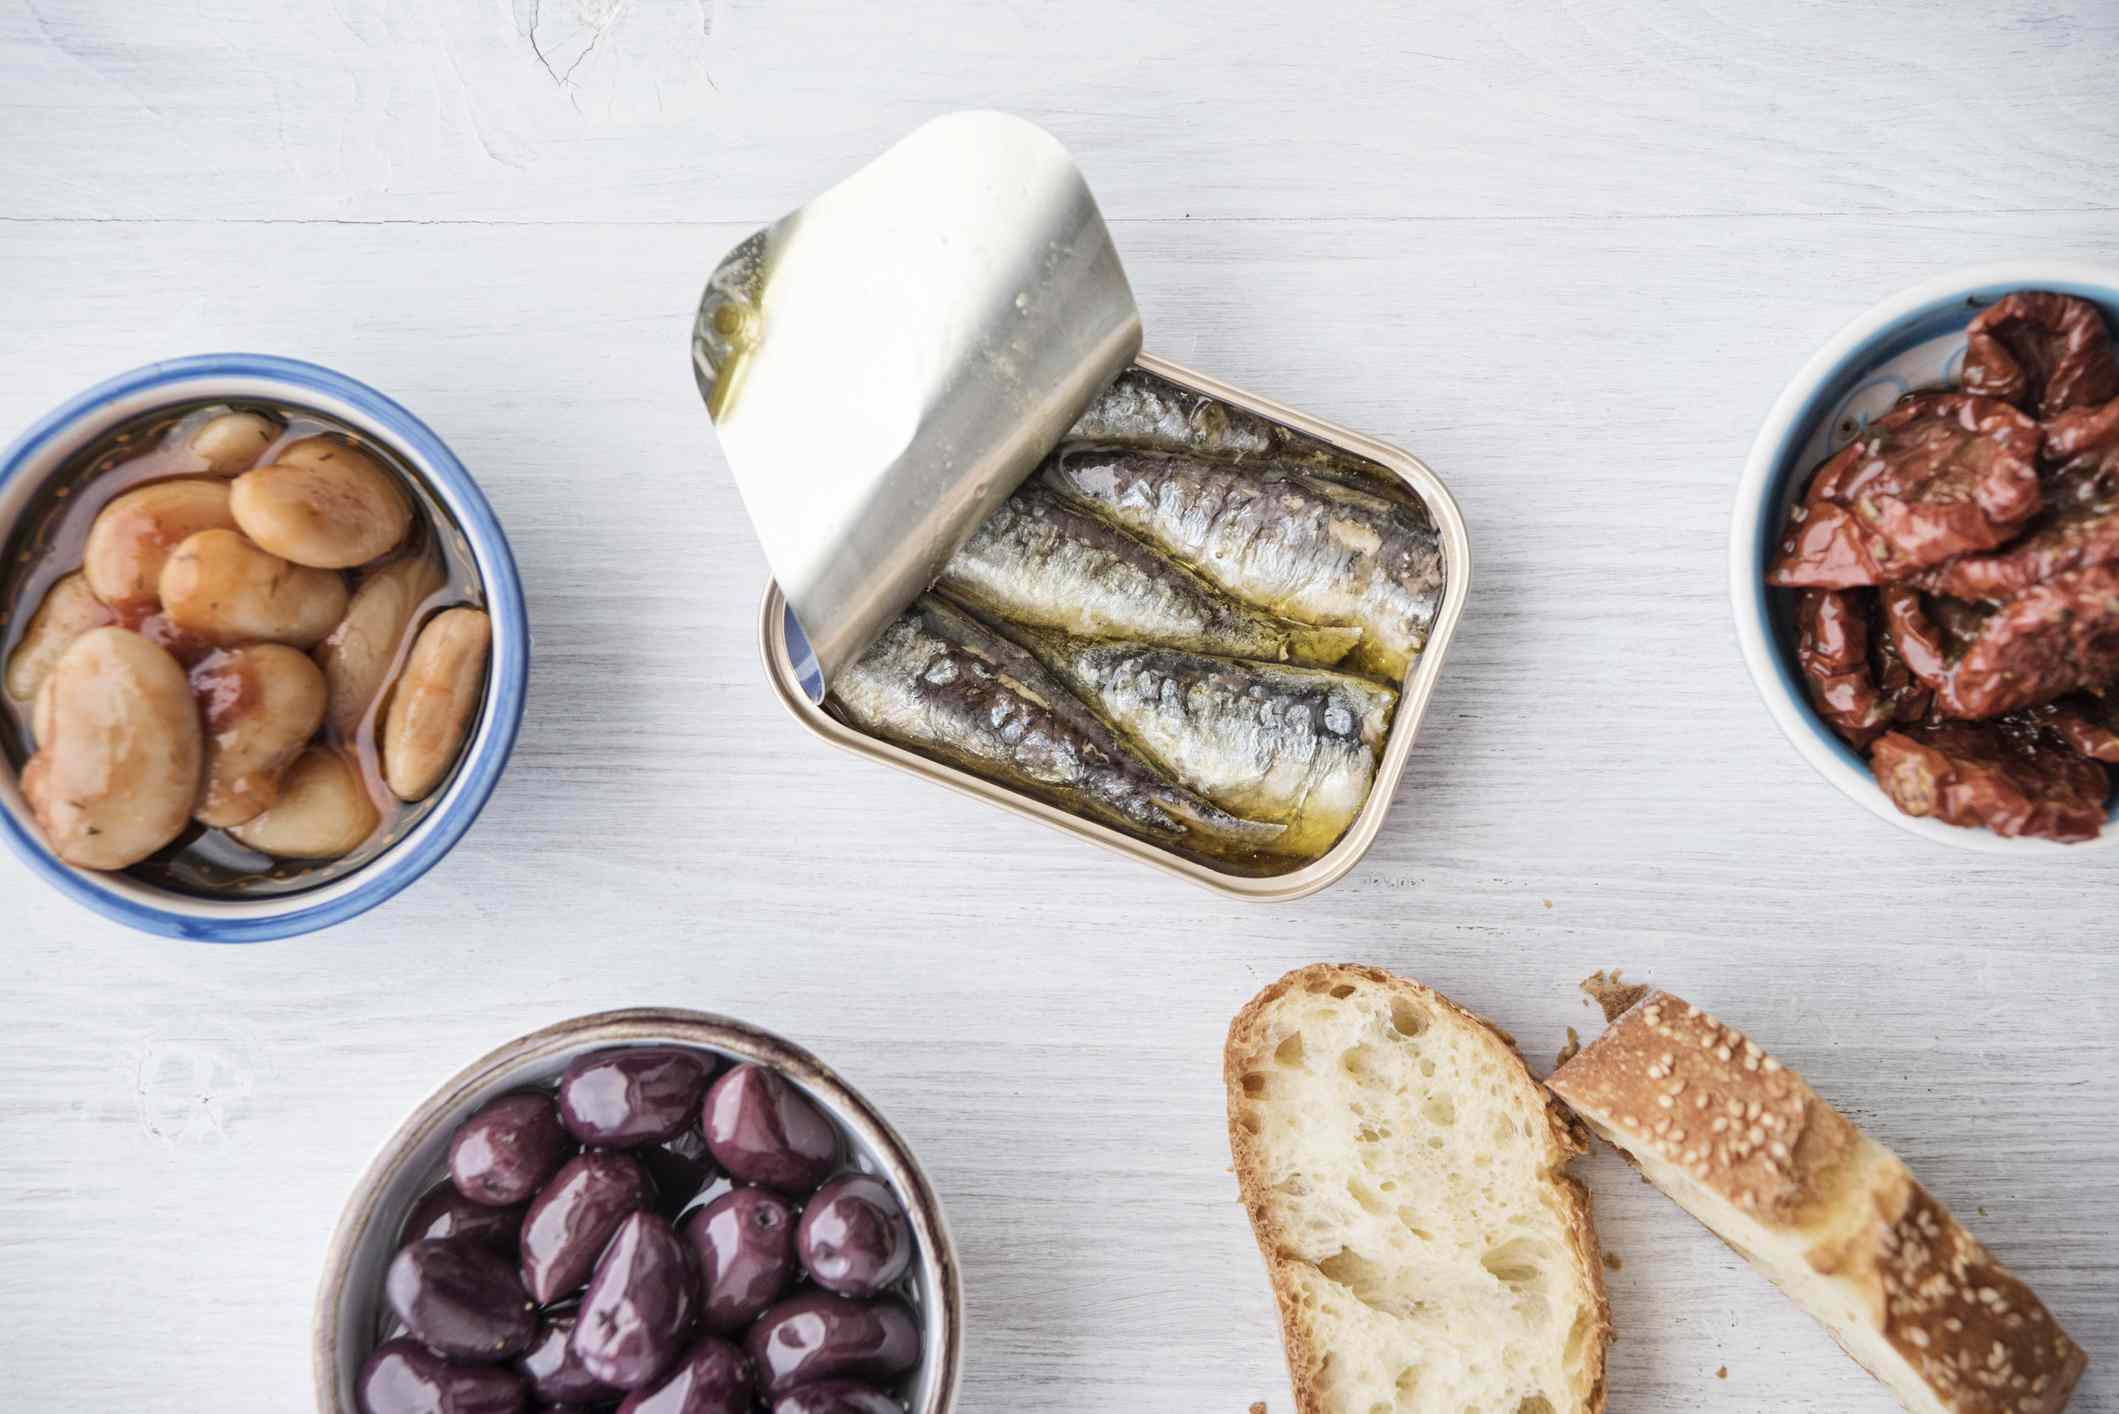 variety of canned seafood products and bread on light wooden surface